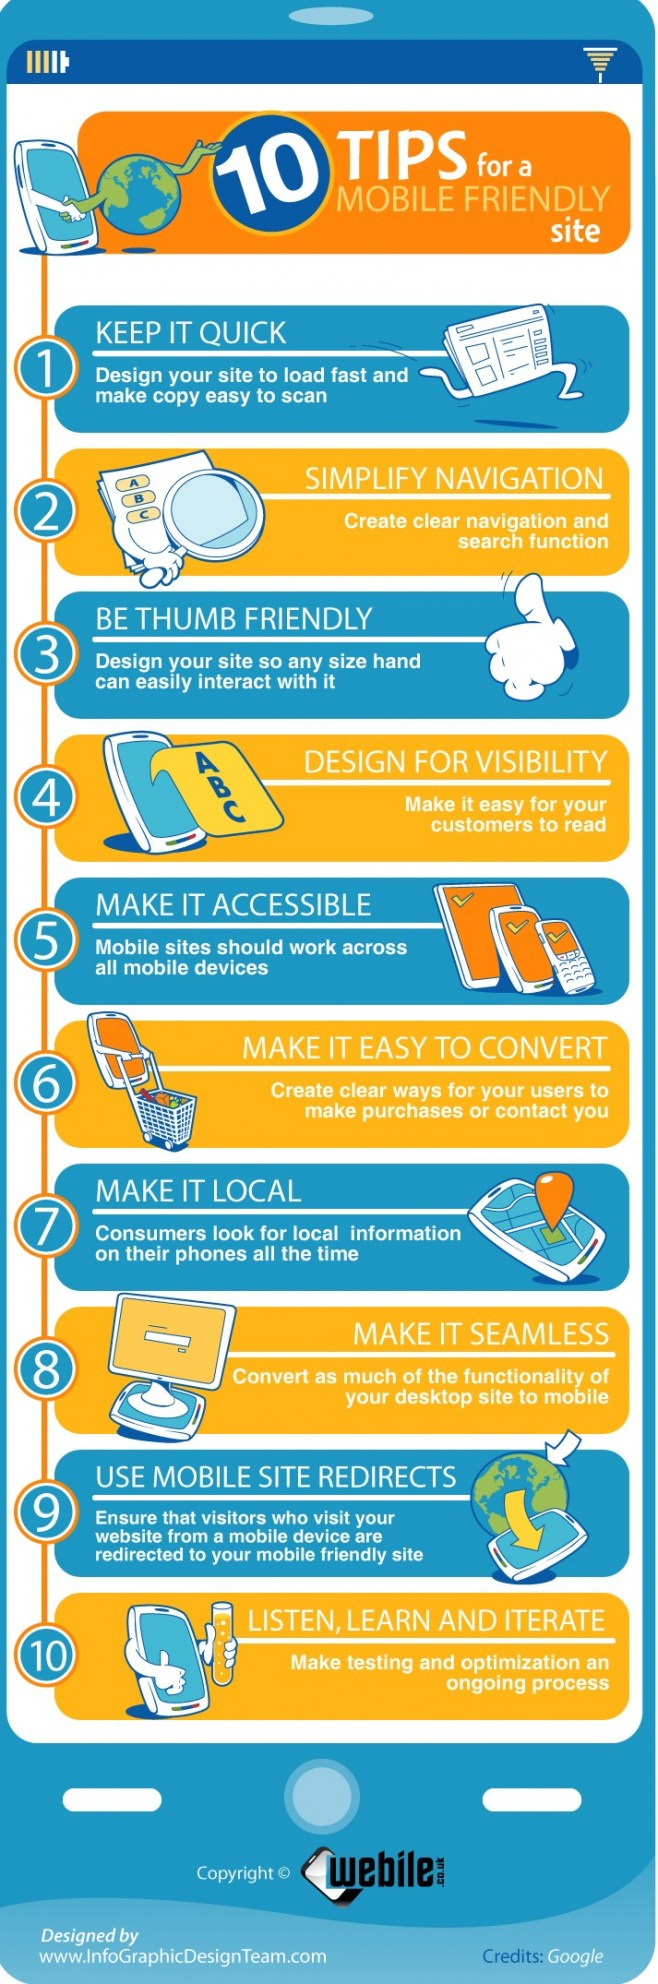 10 tips for a mobile friendly website | Mobile marketing ...